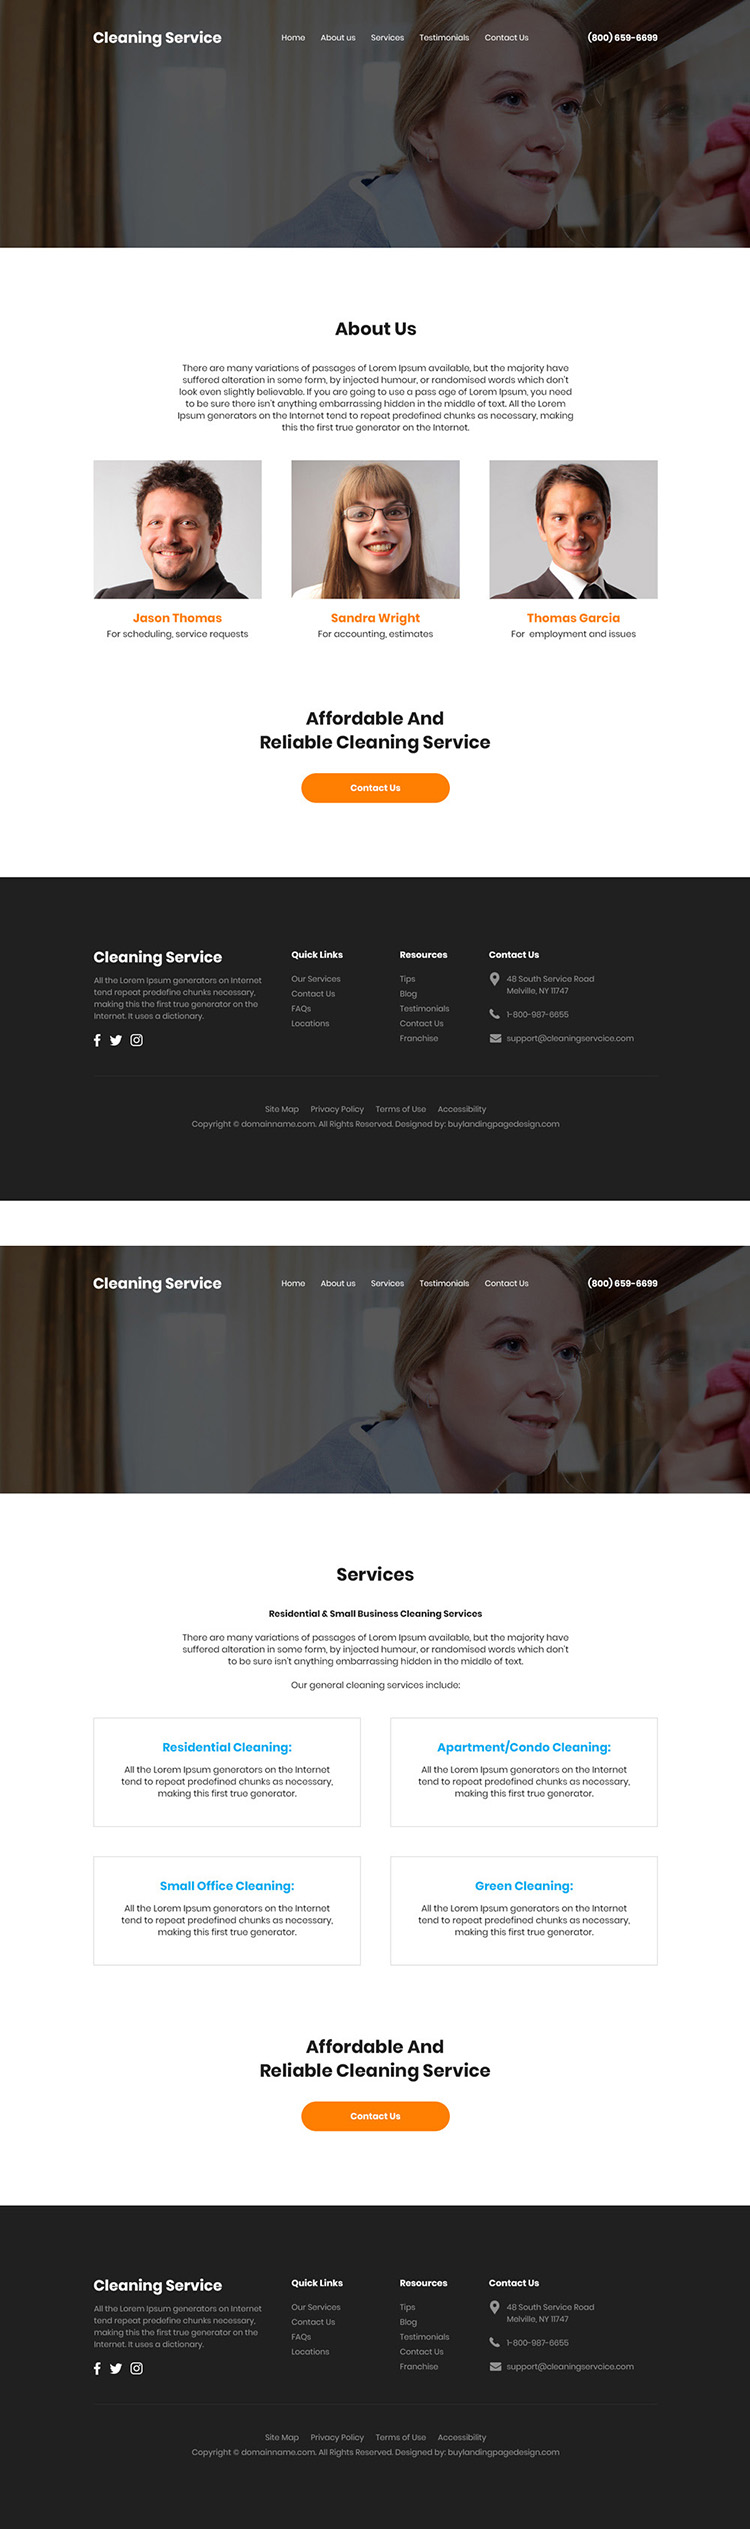 residential and commercial cleaning service company website design